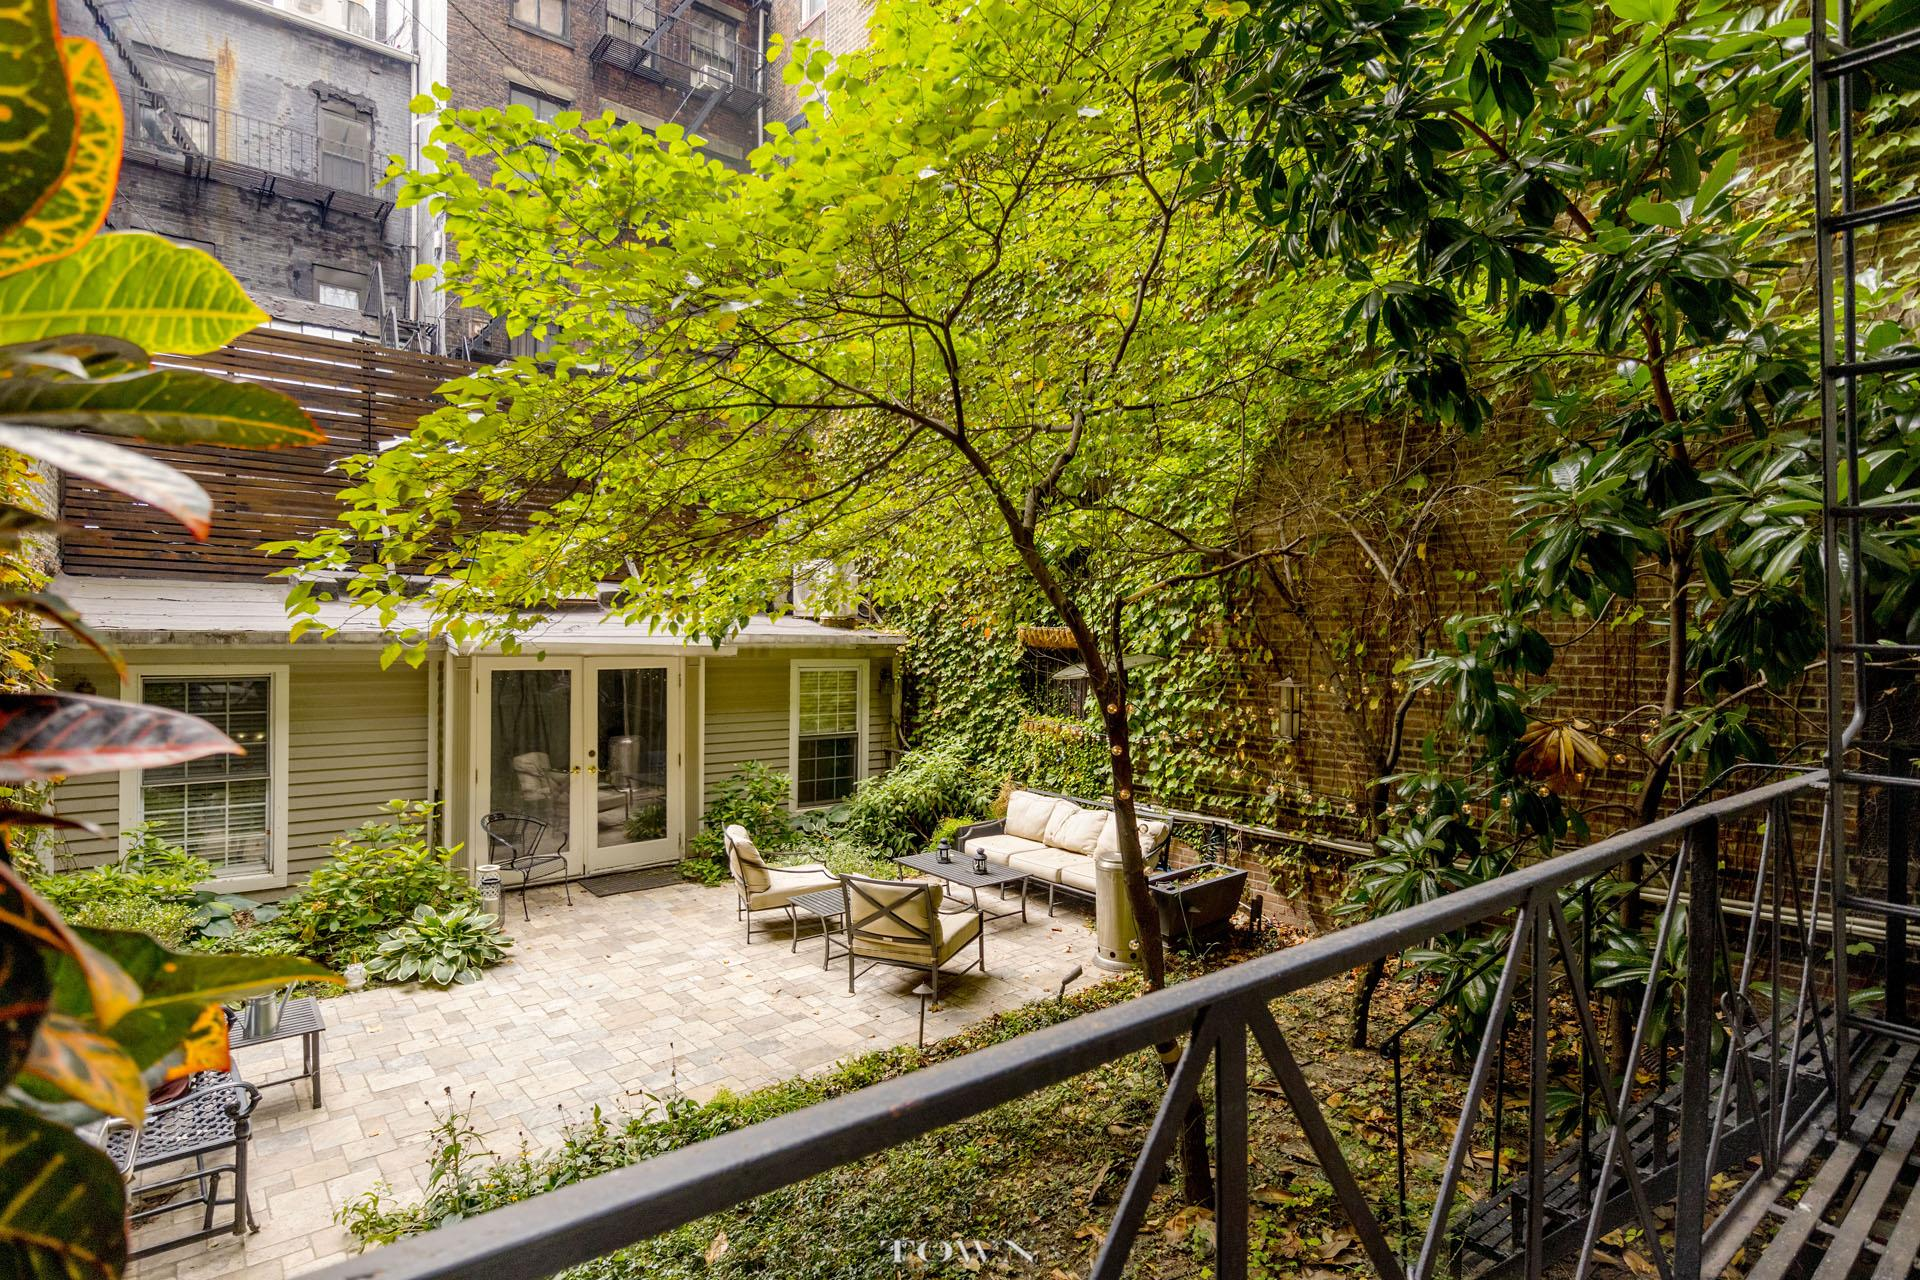 Townhouse for Sale at 28 East 21st Street, #2-Flr 28 East 21st Street New York, New York 10010 United States